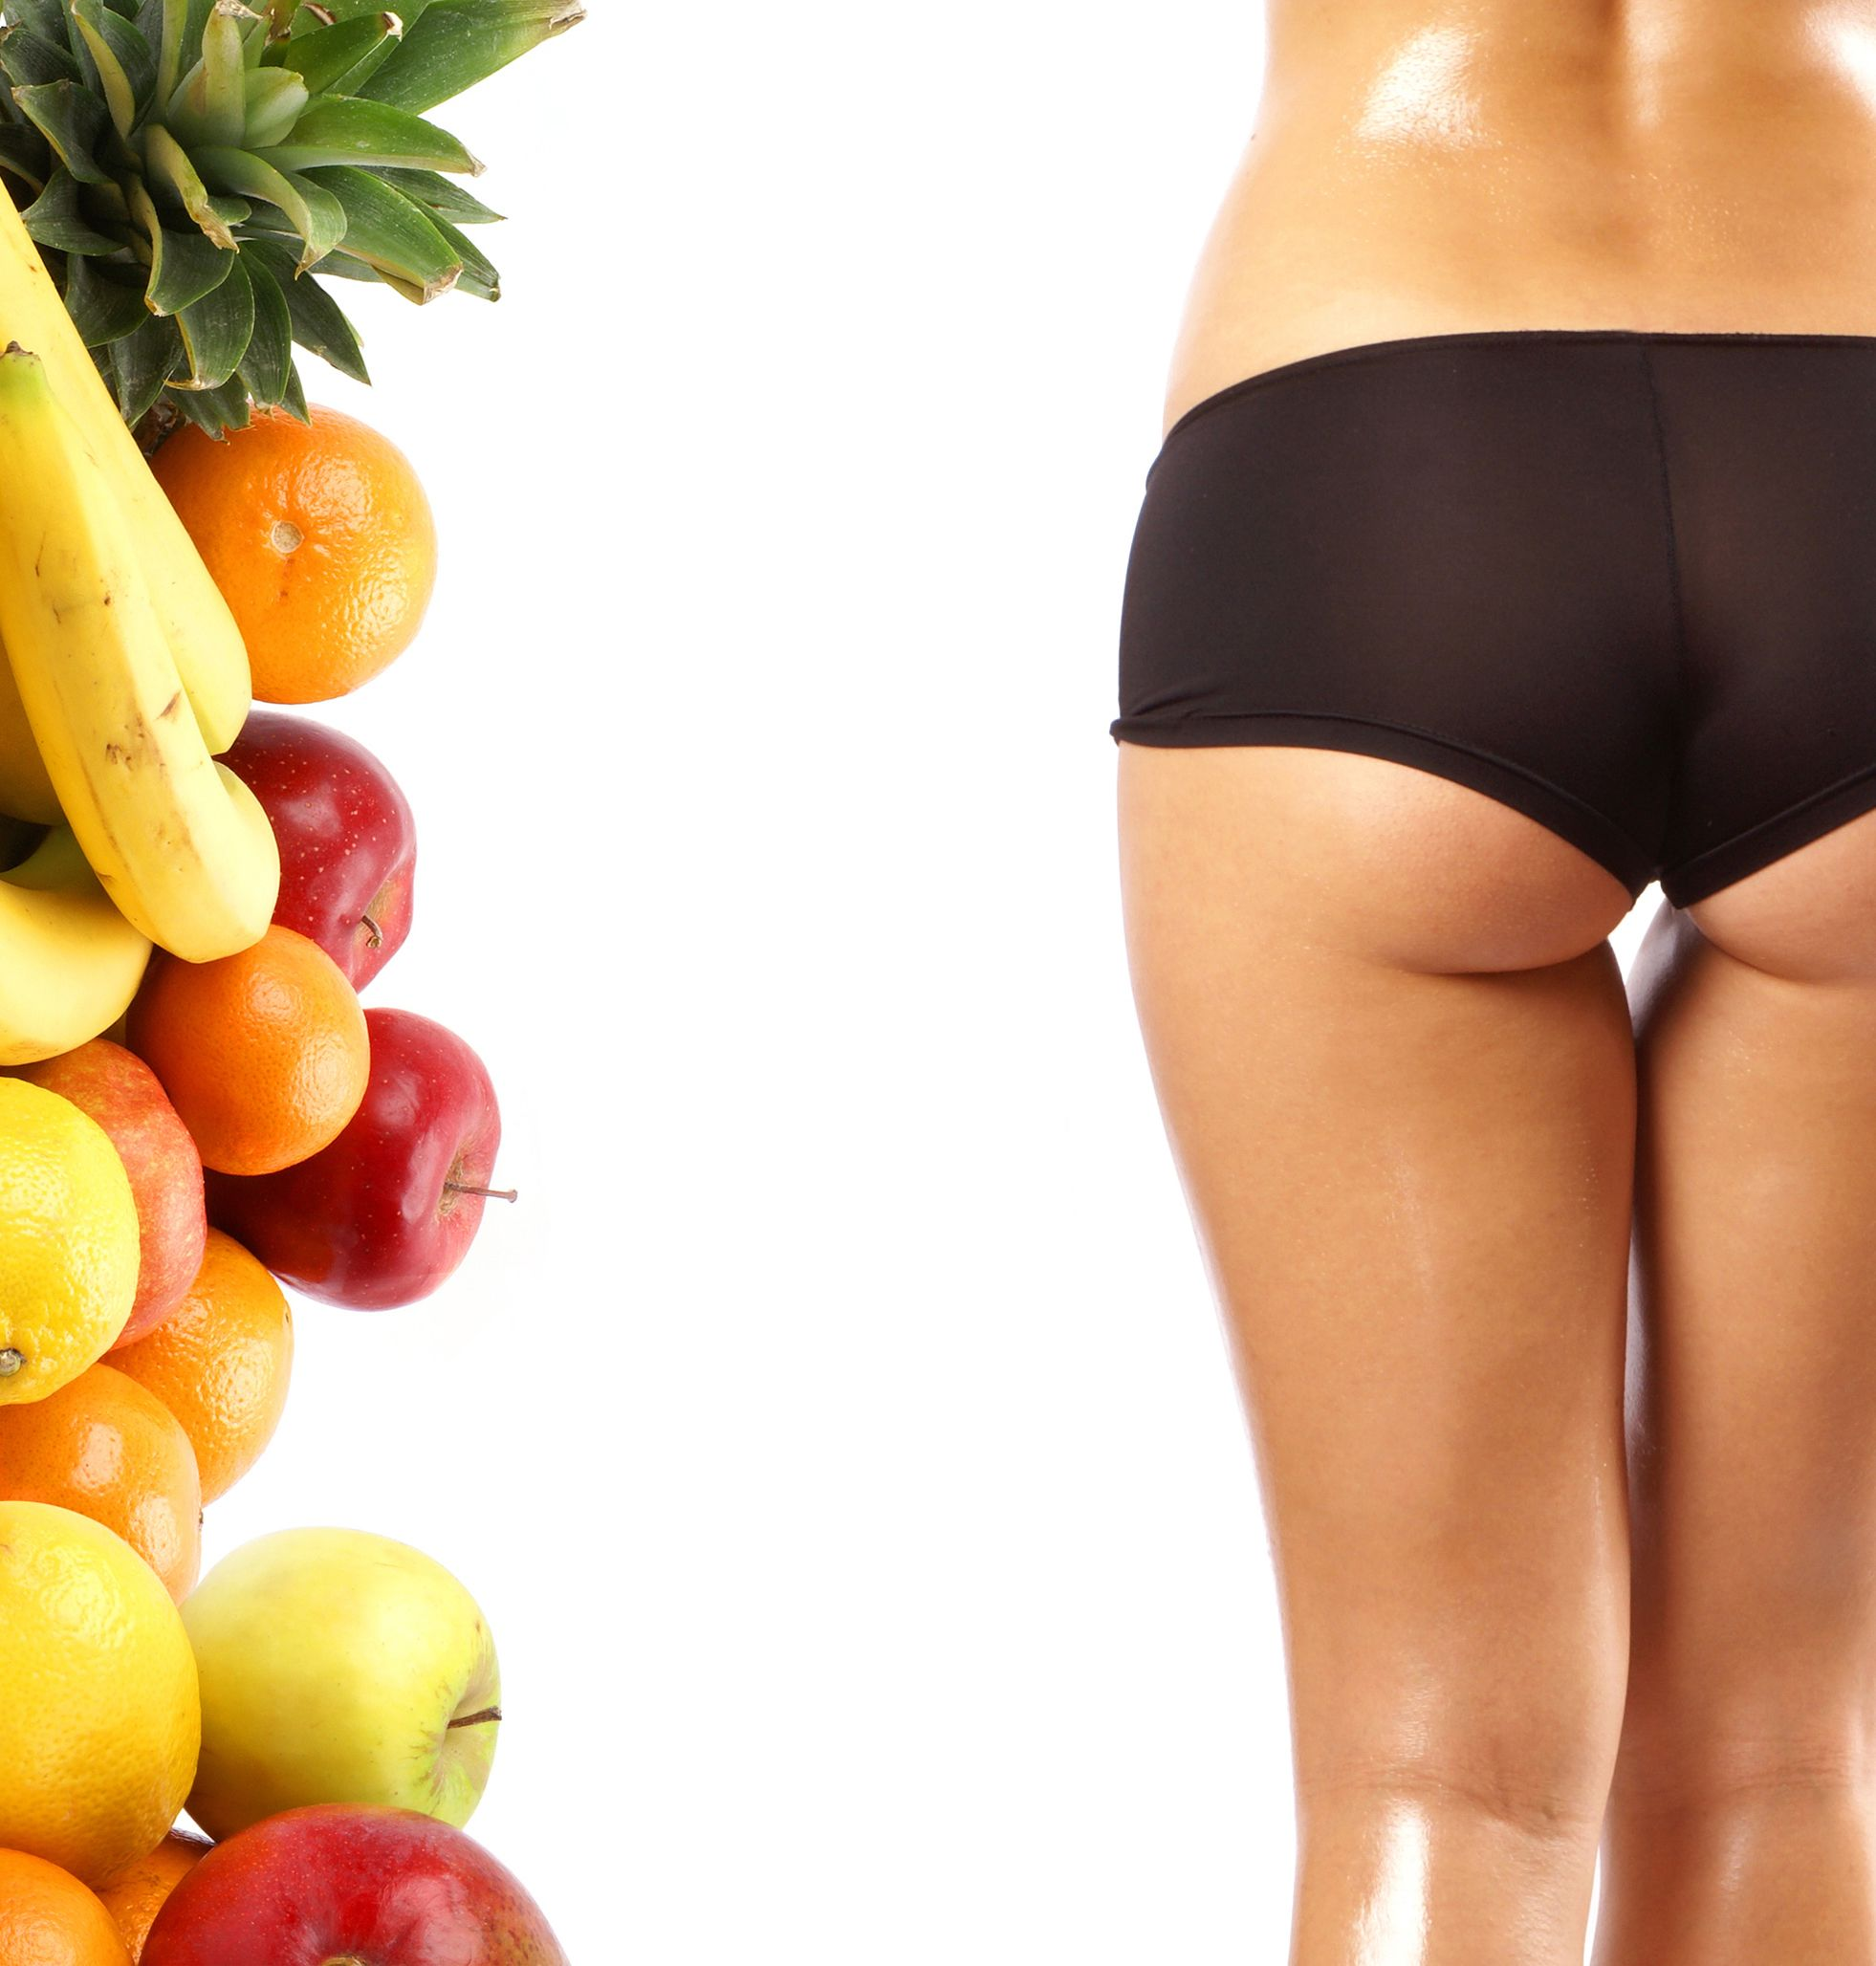 Fiber from fruits and vegetables helps us to lose weight and keep fit